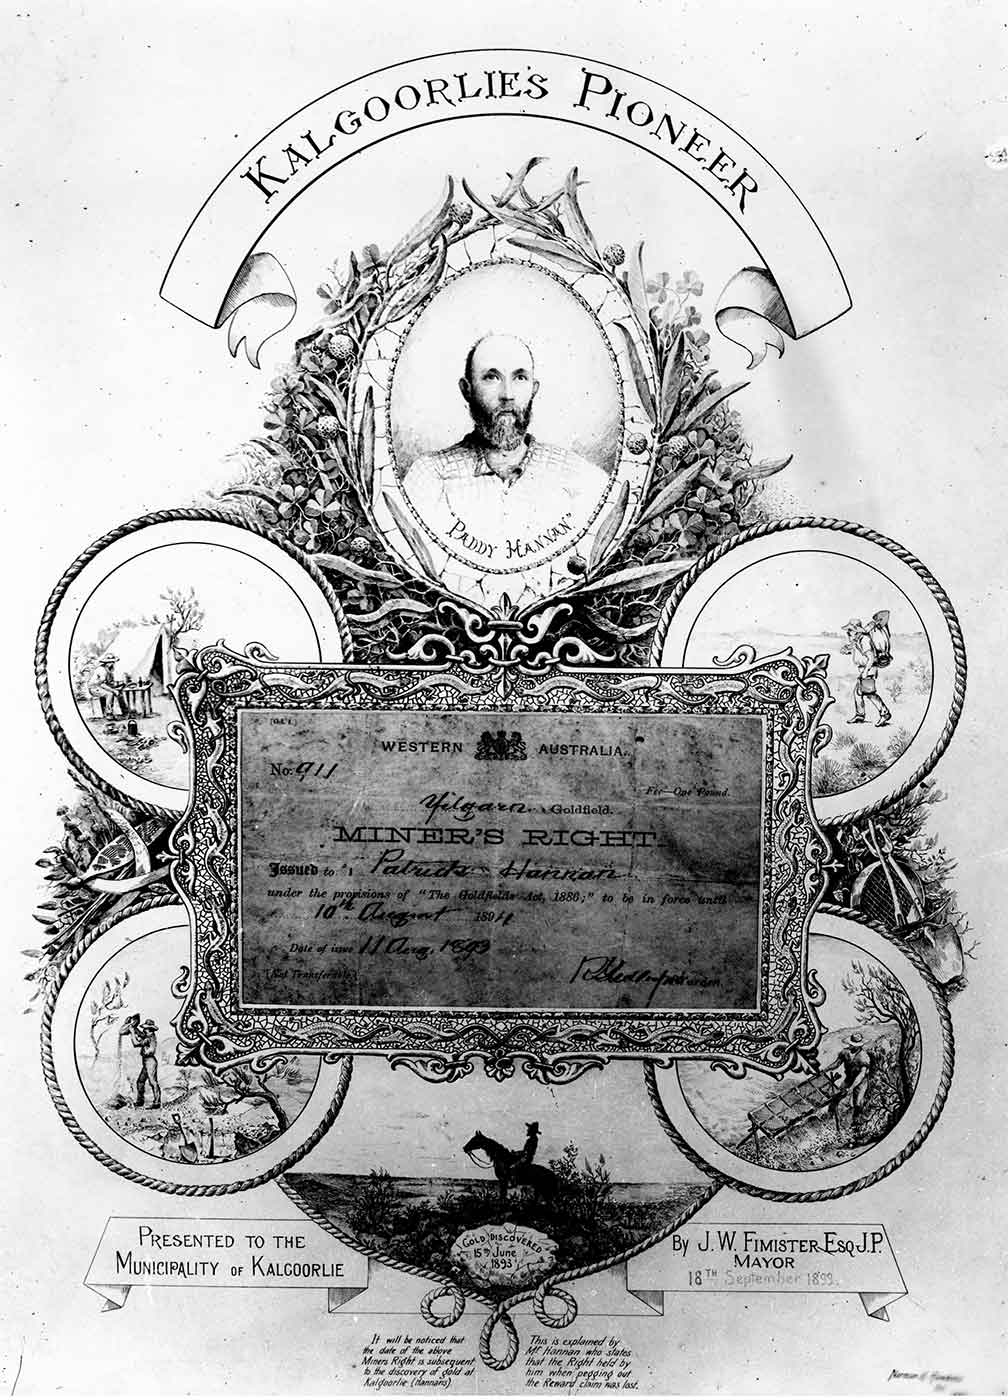 Certificate with the text: KALGOORLIE'S PIONEER. - click to view larger image